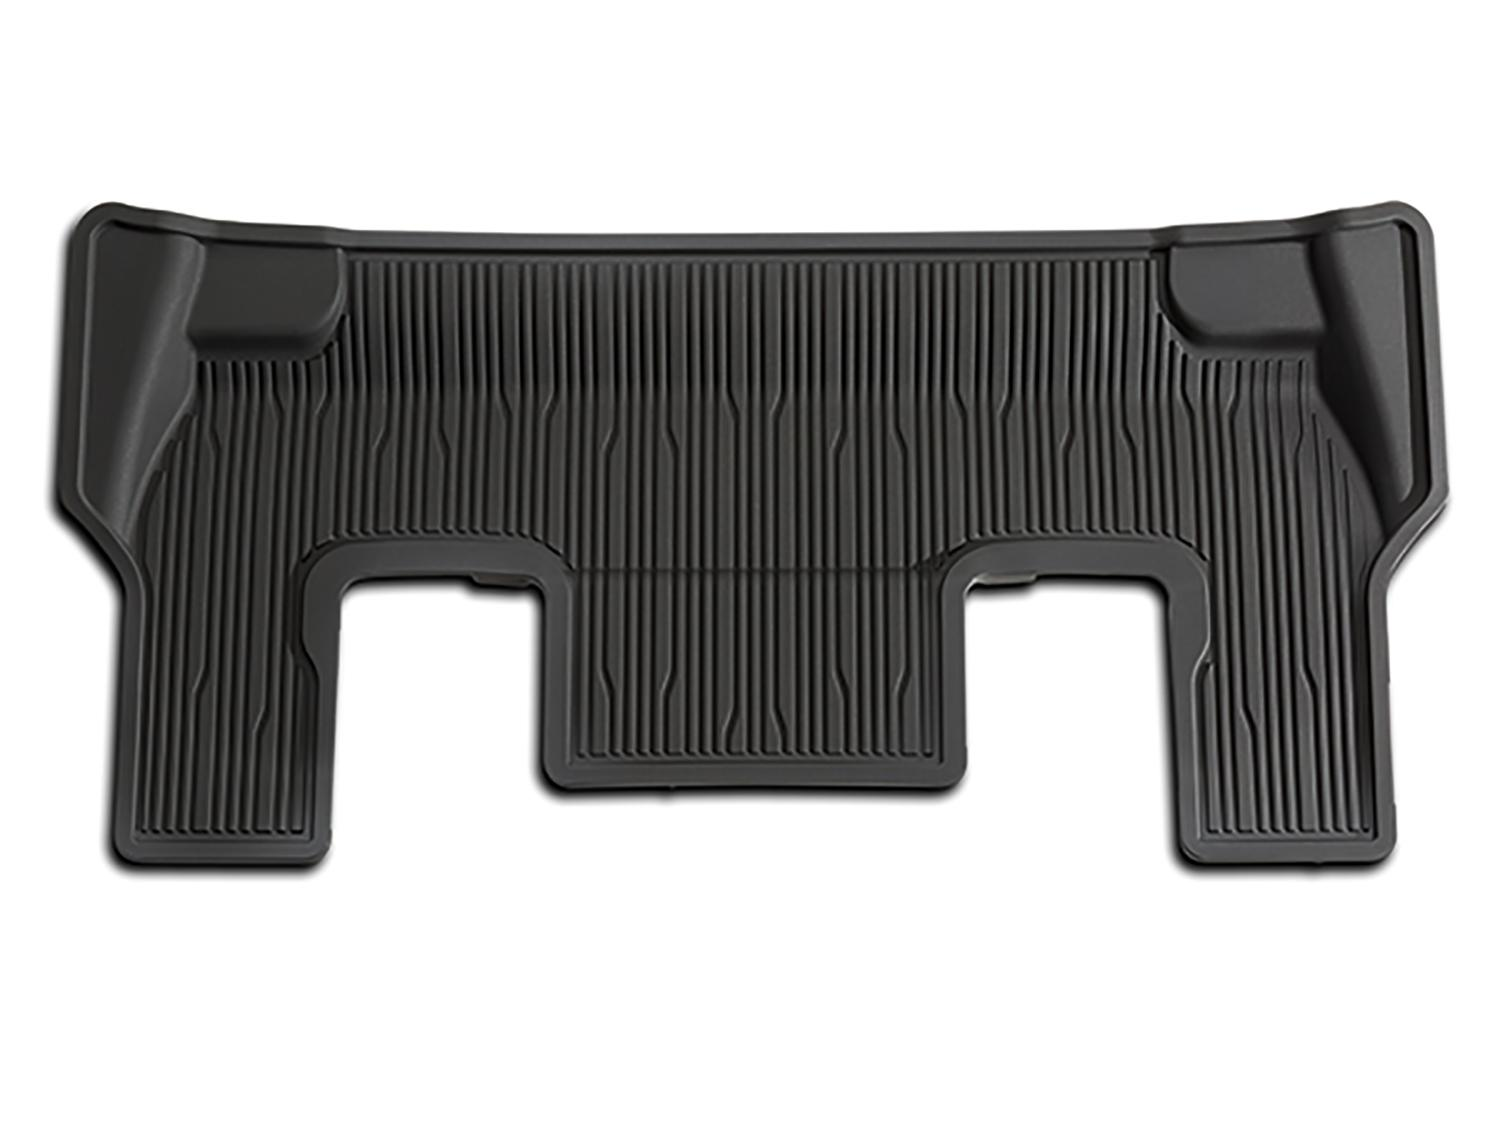 Floor Mats - All-Weather, Black, For 3rd Row